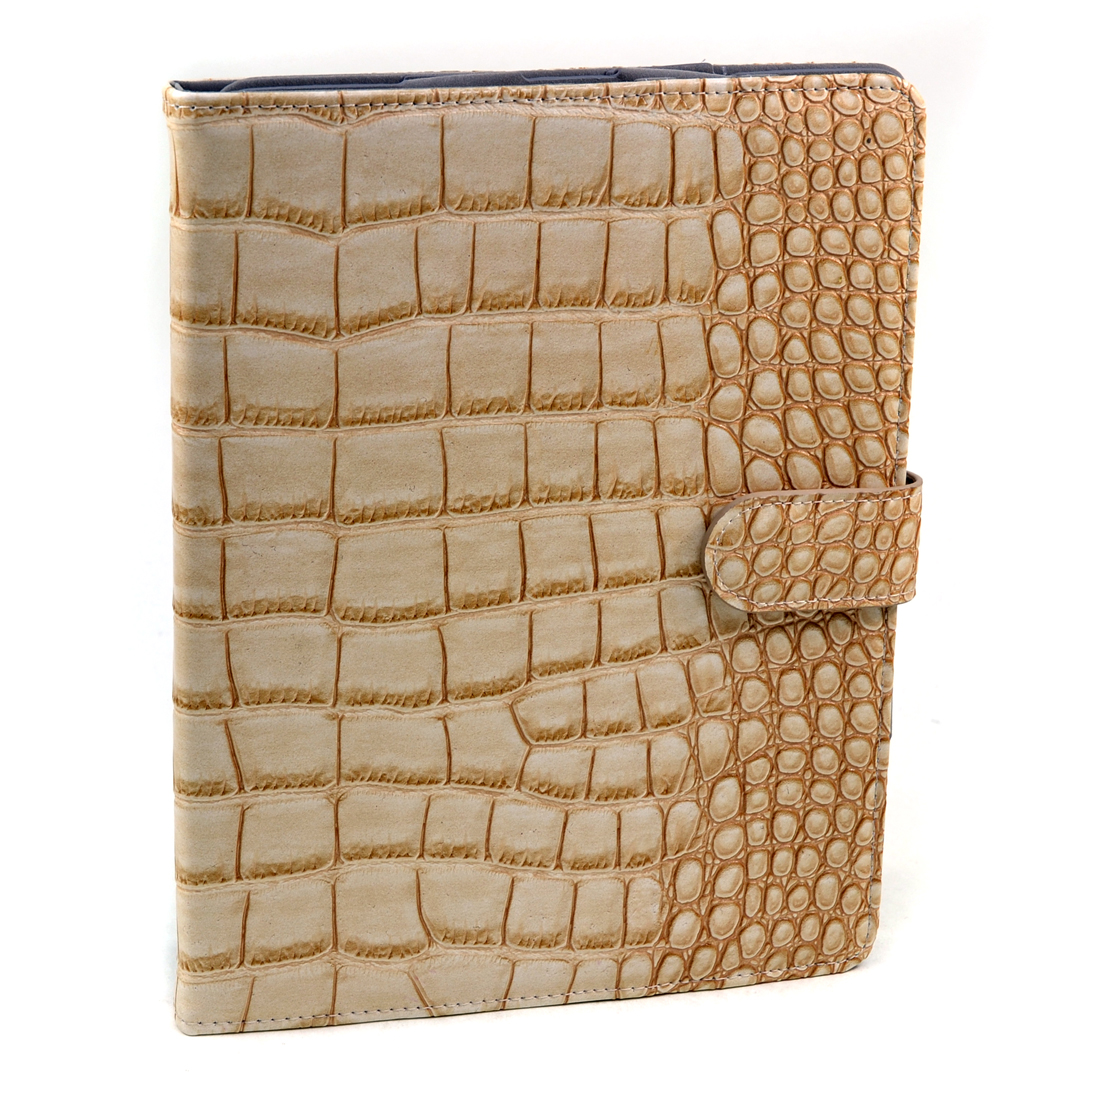 Dasein® Matte Faux Crocoskin Leather Case New Smart Stand Cover for iPad 2 3 4